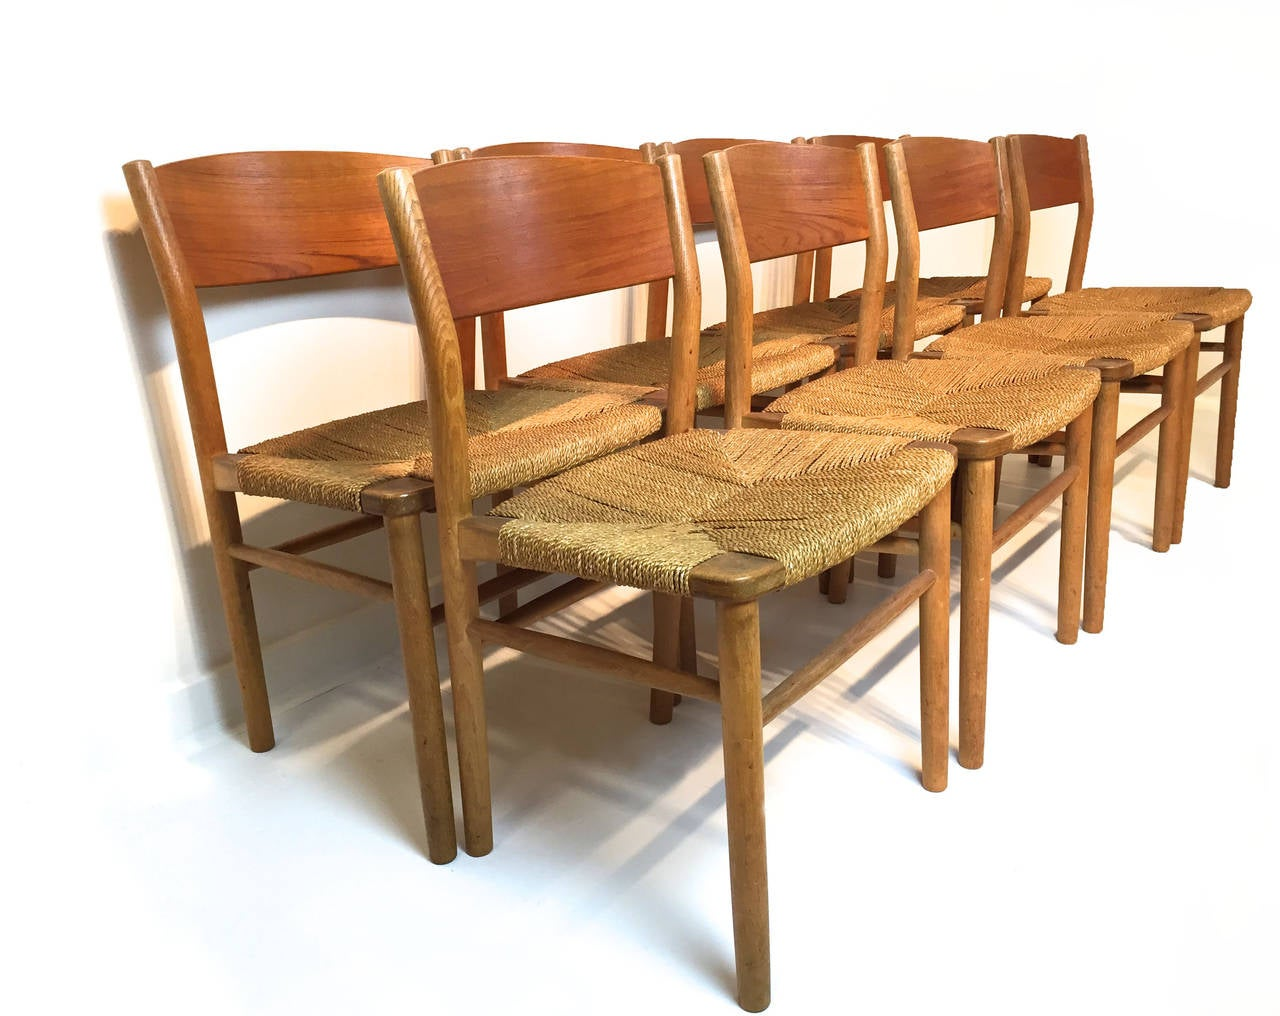 Seagrass Dining Chair Seagrass Dining Chairs With Oak Legs Beach Theme Seagrass Dining